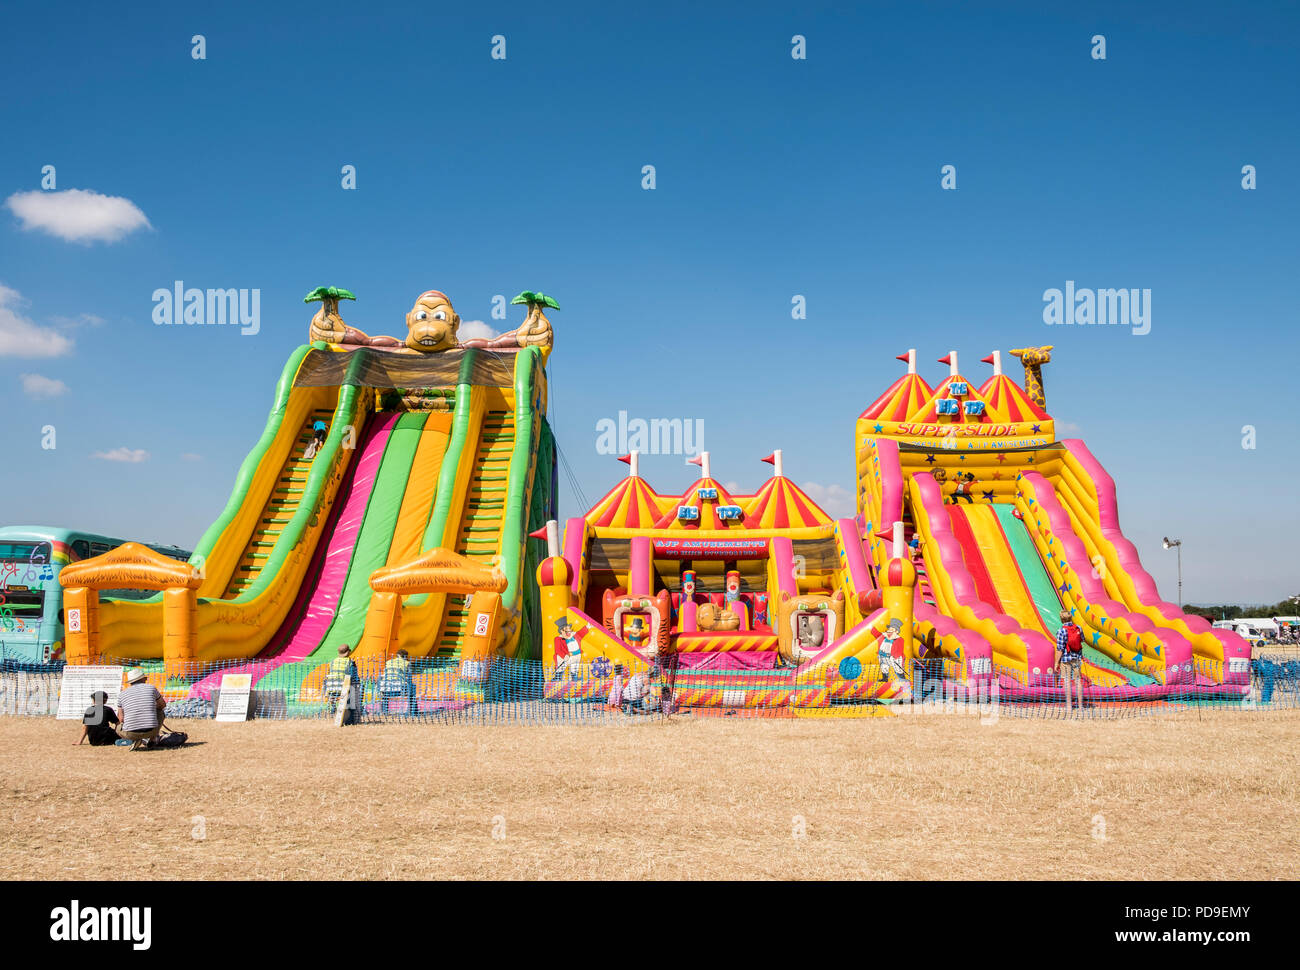 Giant Inflatable slides at a country fair. - Stock Image